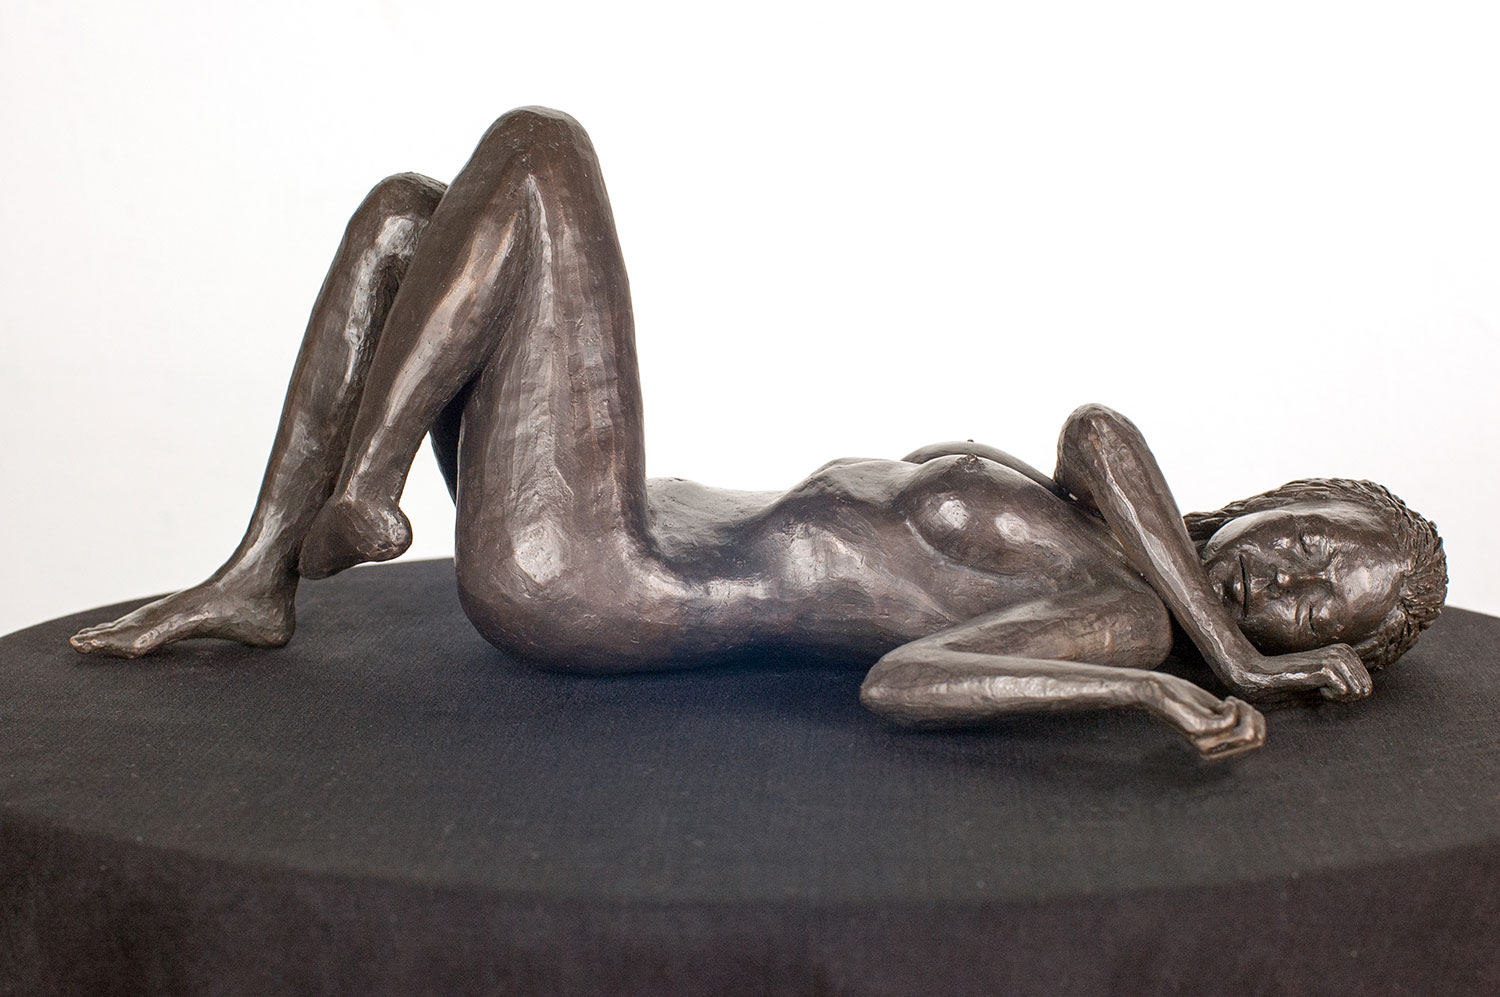 acquiescence_bronze_sculpture_3.jpg